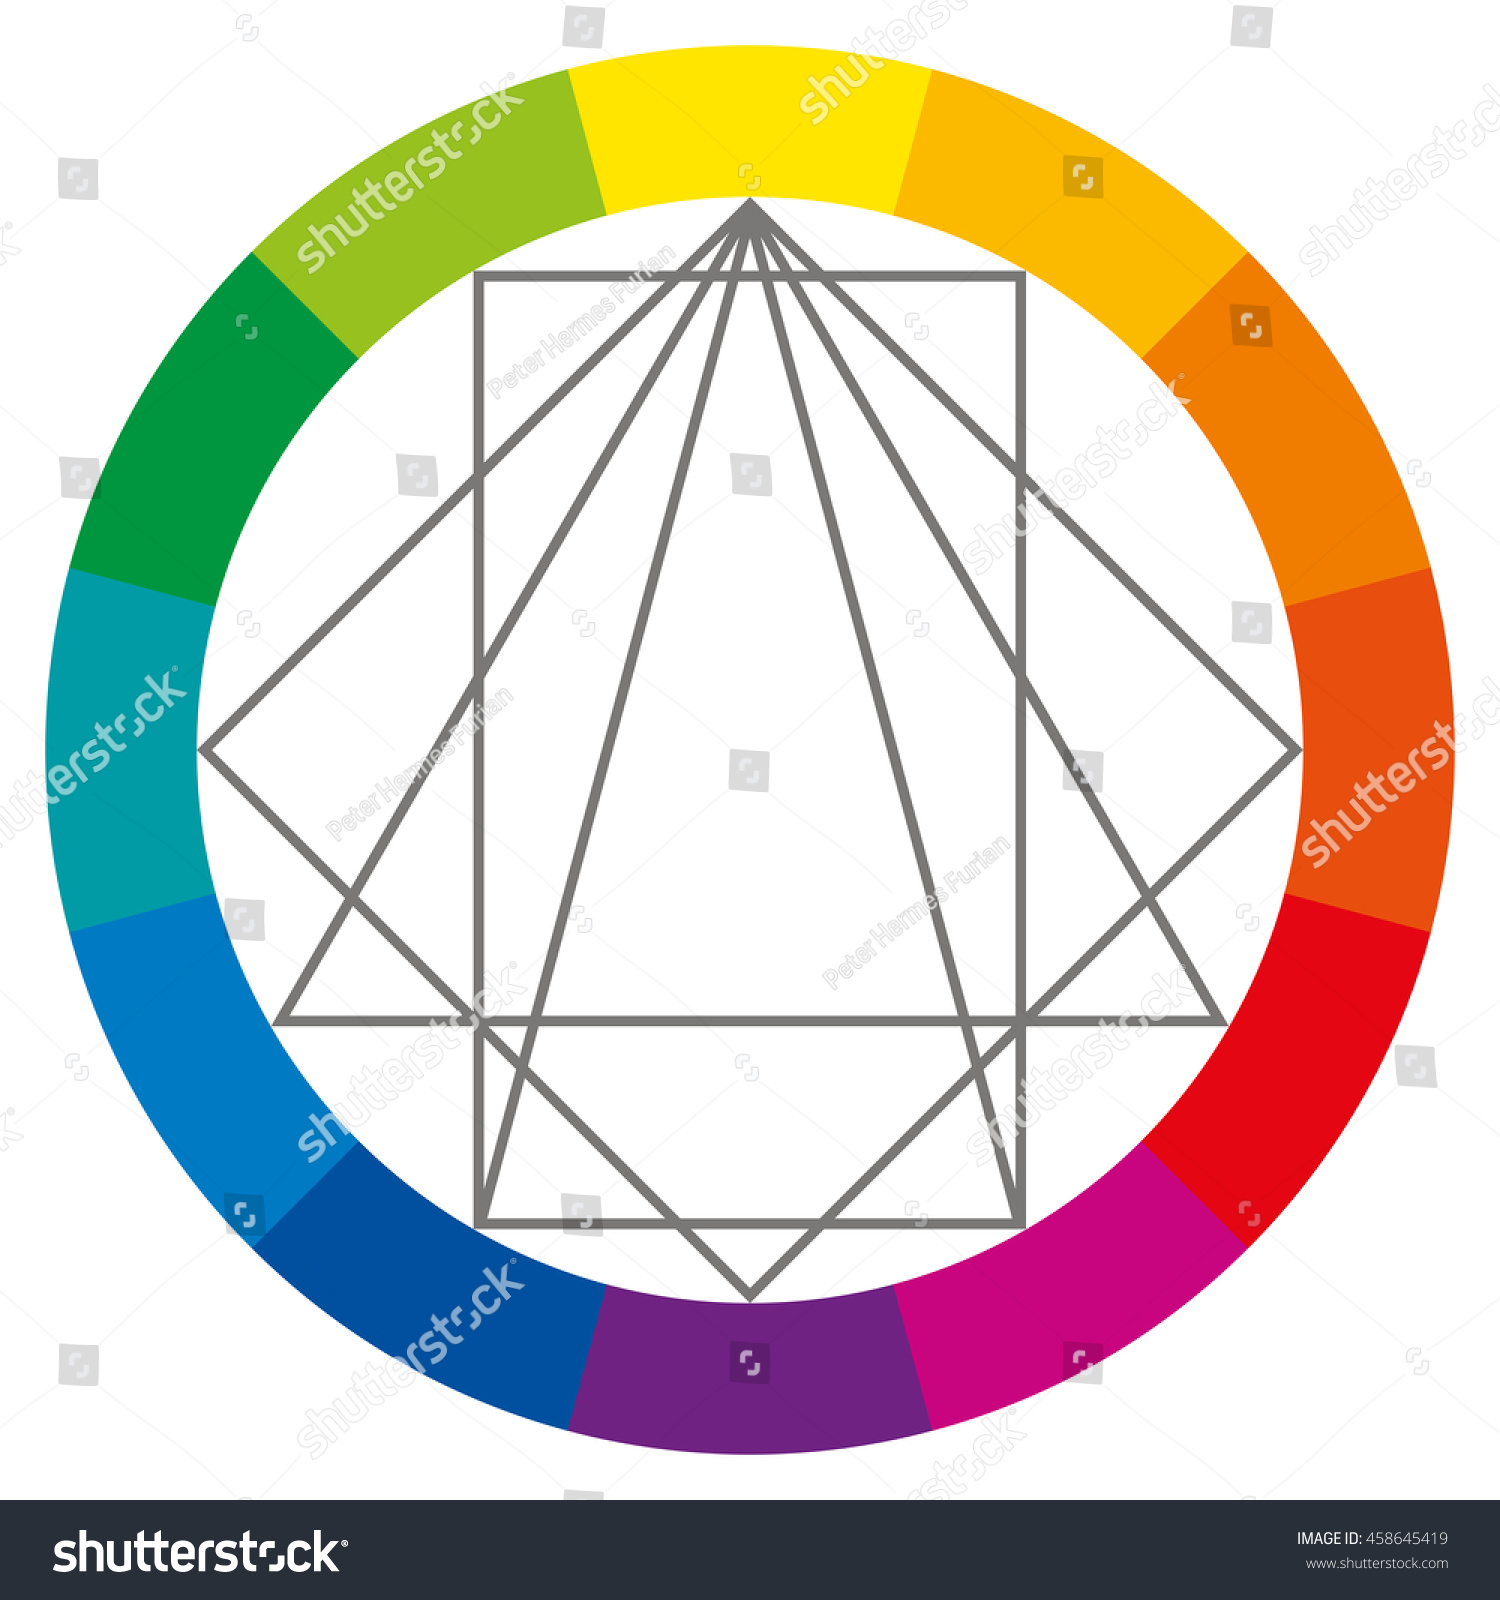 Color wheel showing complementary colors that are used in art and  paintings. Square, rectangle